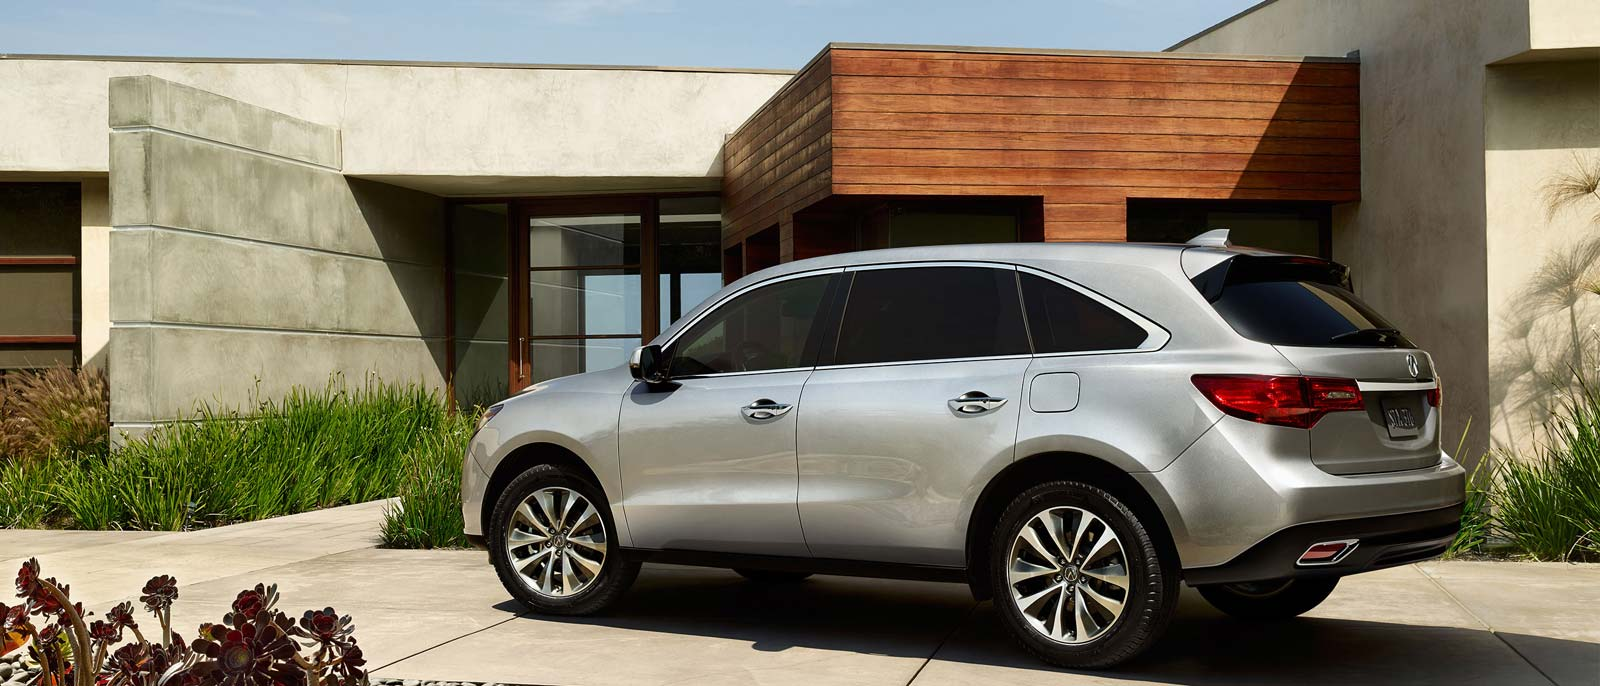 2016 Acura MDX rear exterior view